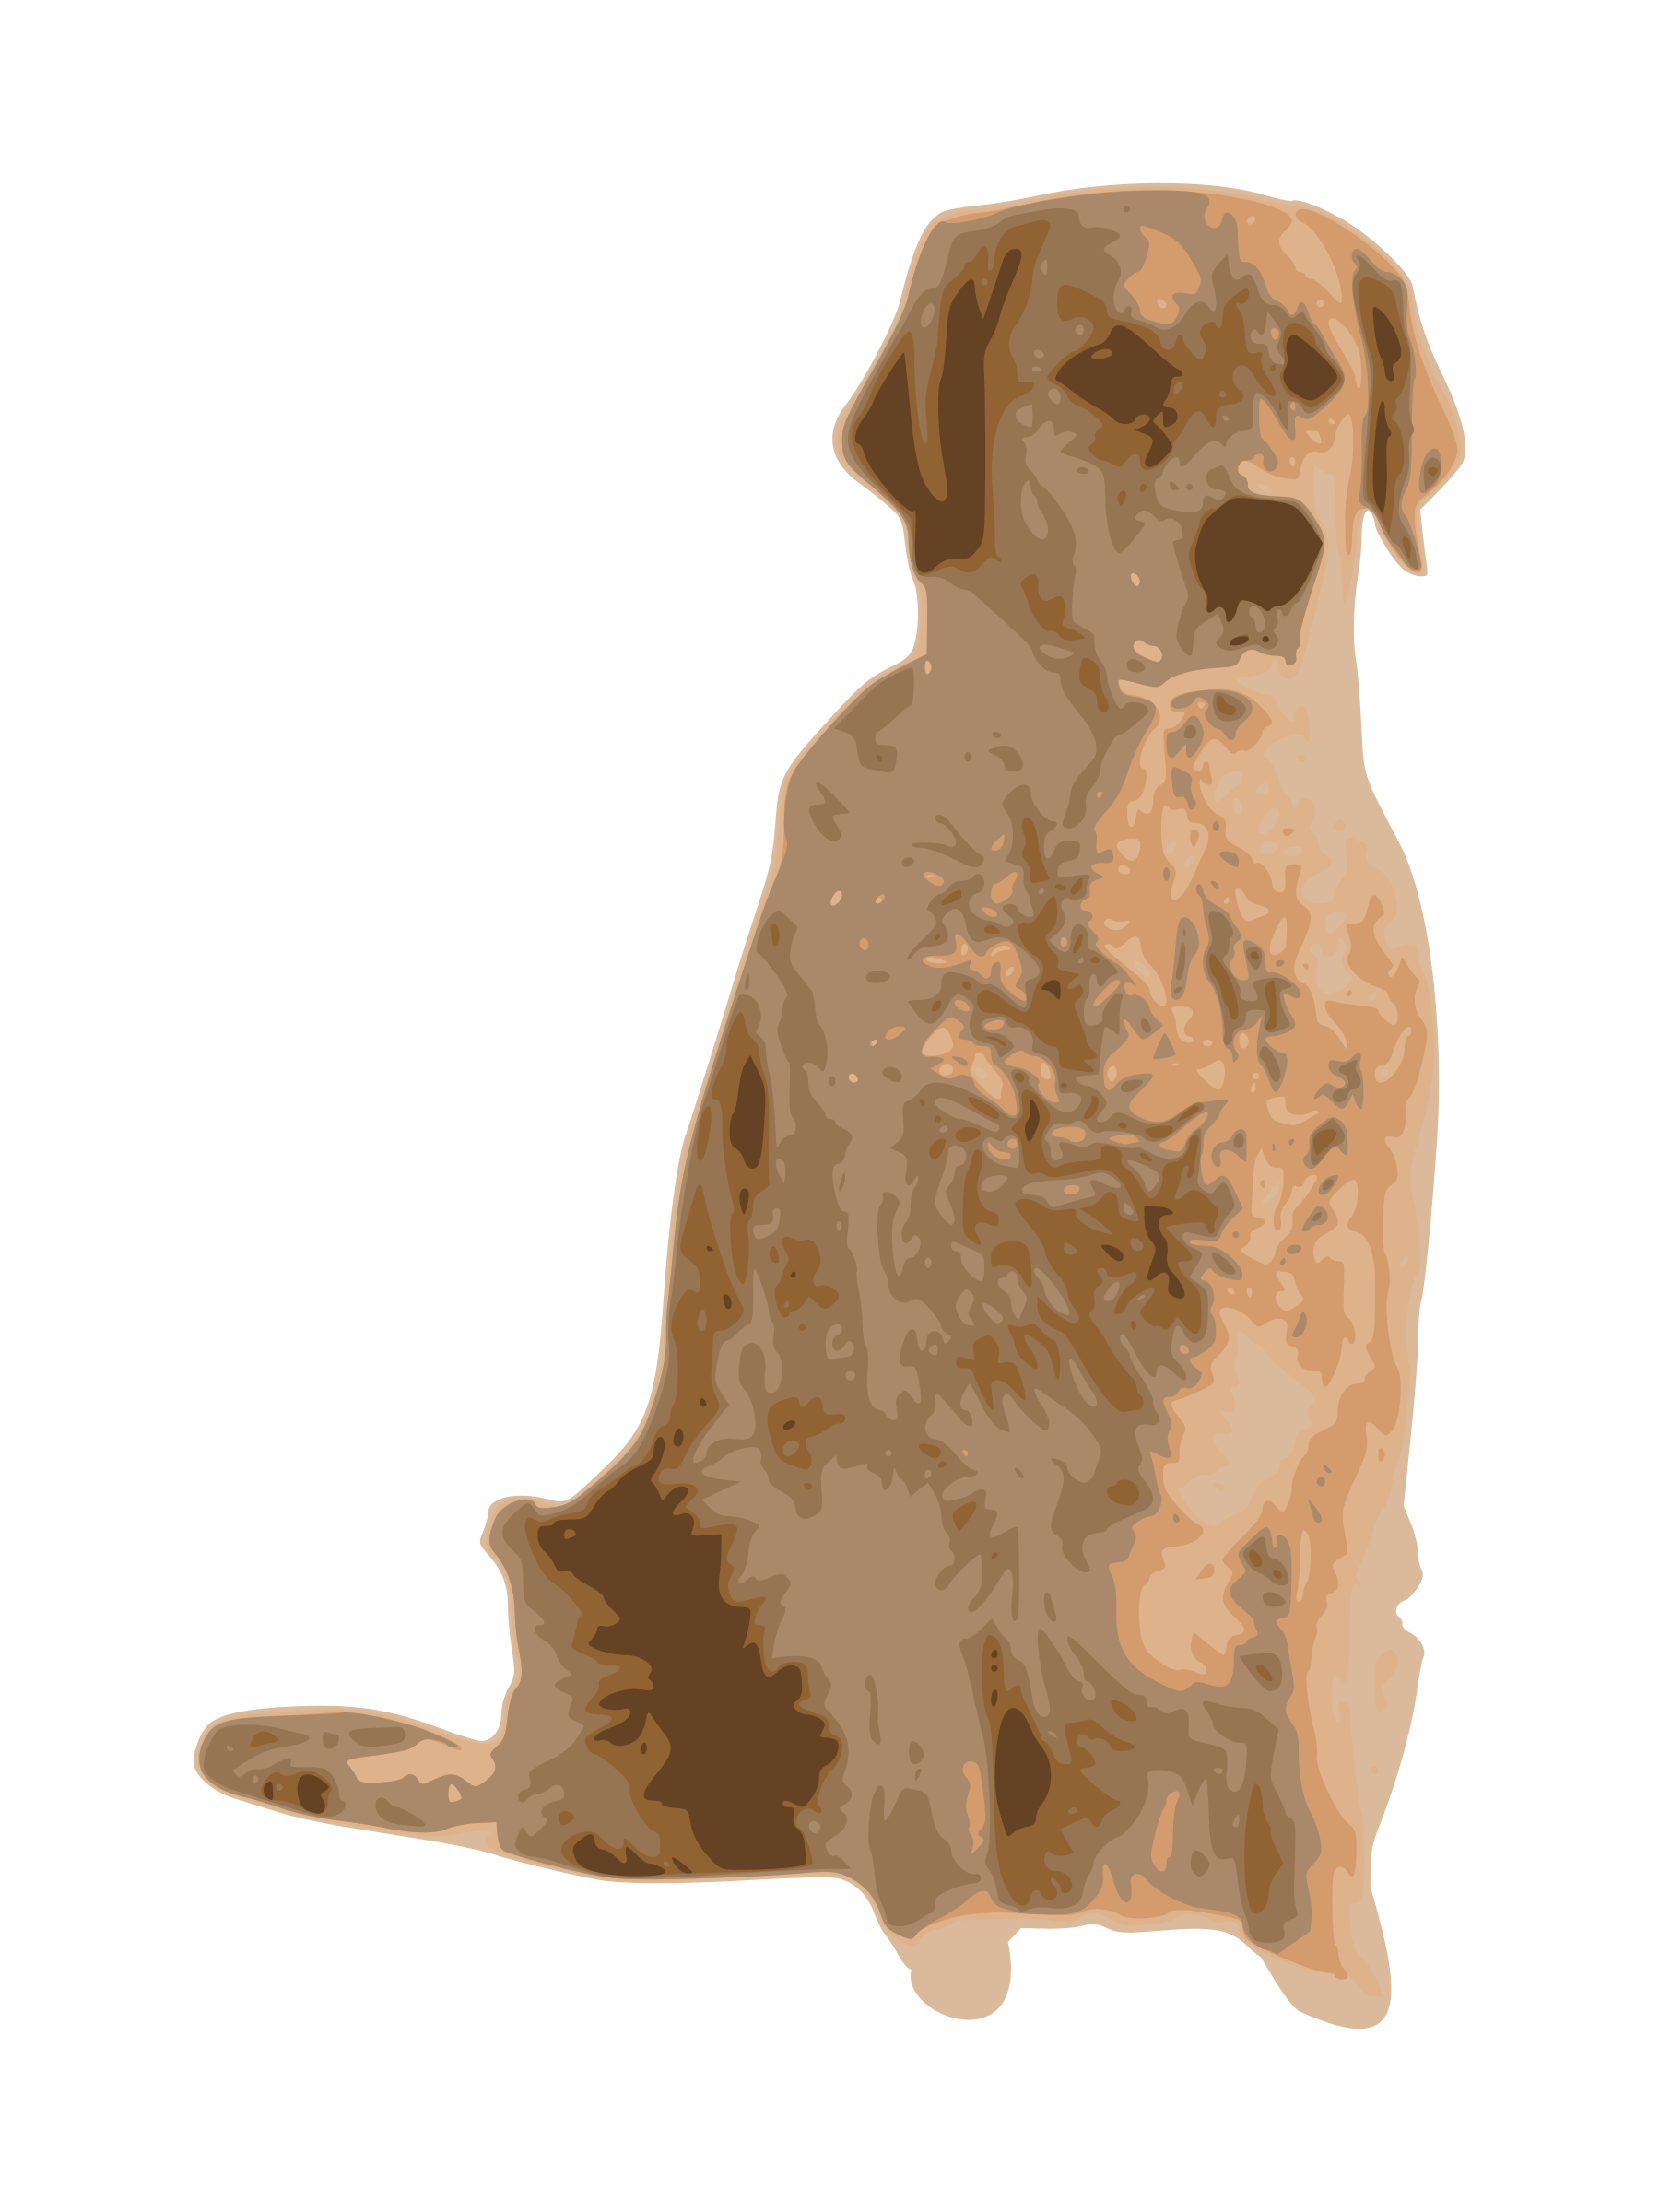 Golden retriever dog clipart picture freeuse stock Clipart - golden retriever picture freeuse stock